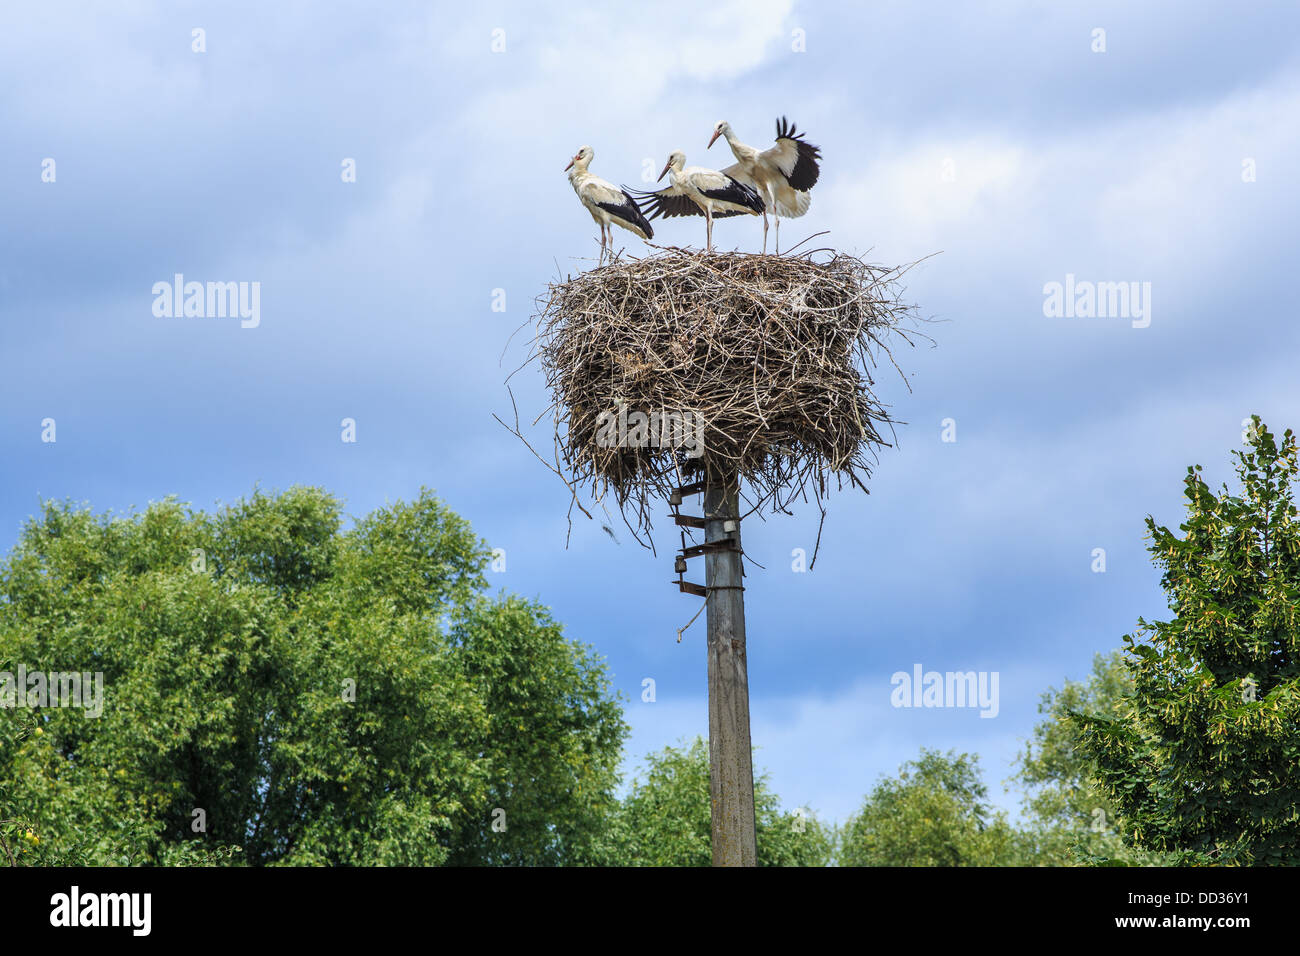 sky, symbol, clouds, showdown, high nest, young storks, maiden flight, view from the top of, the expectation of - Stock Image